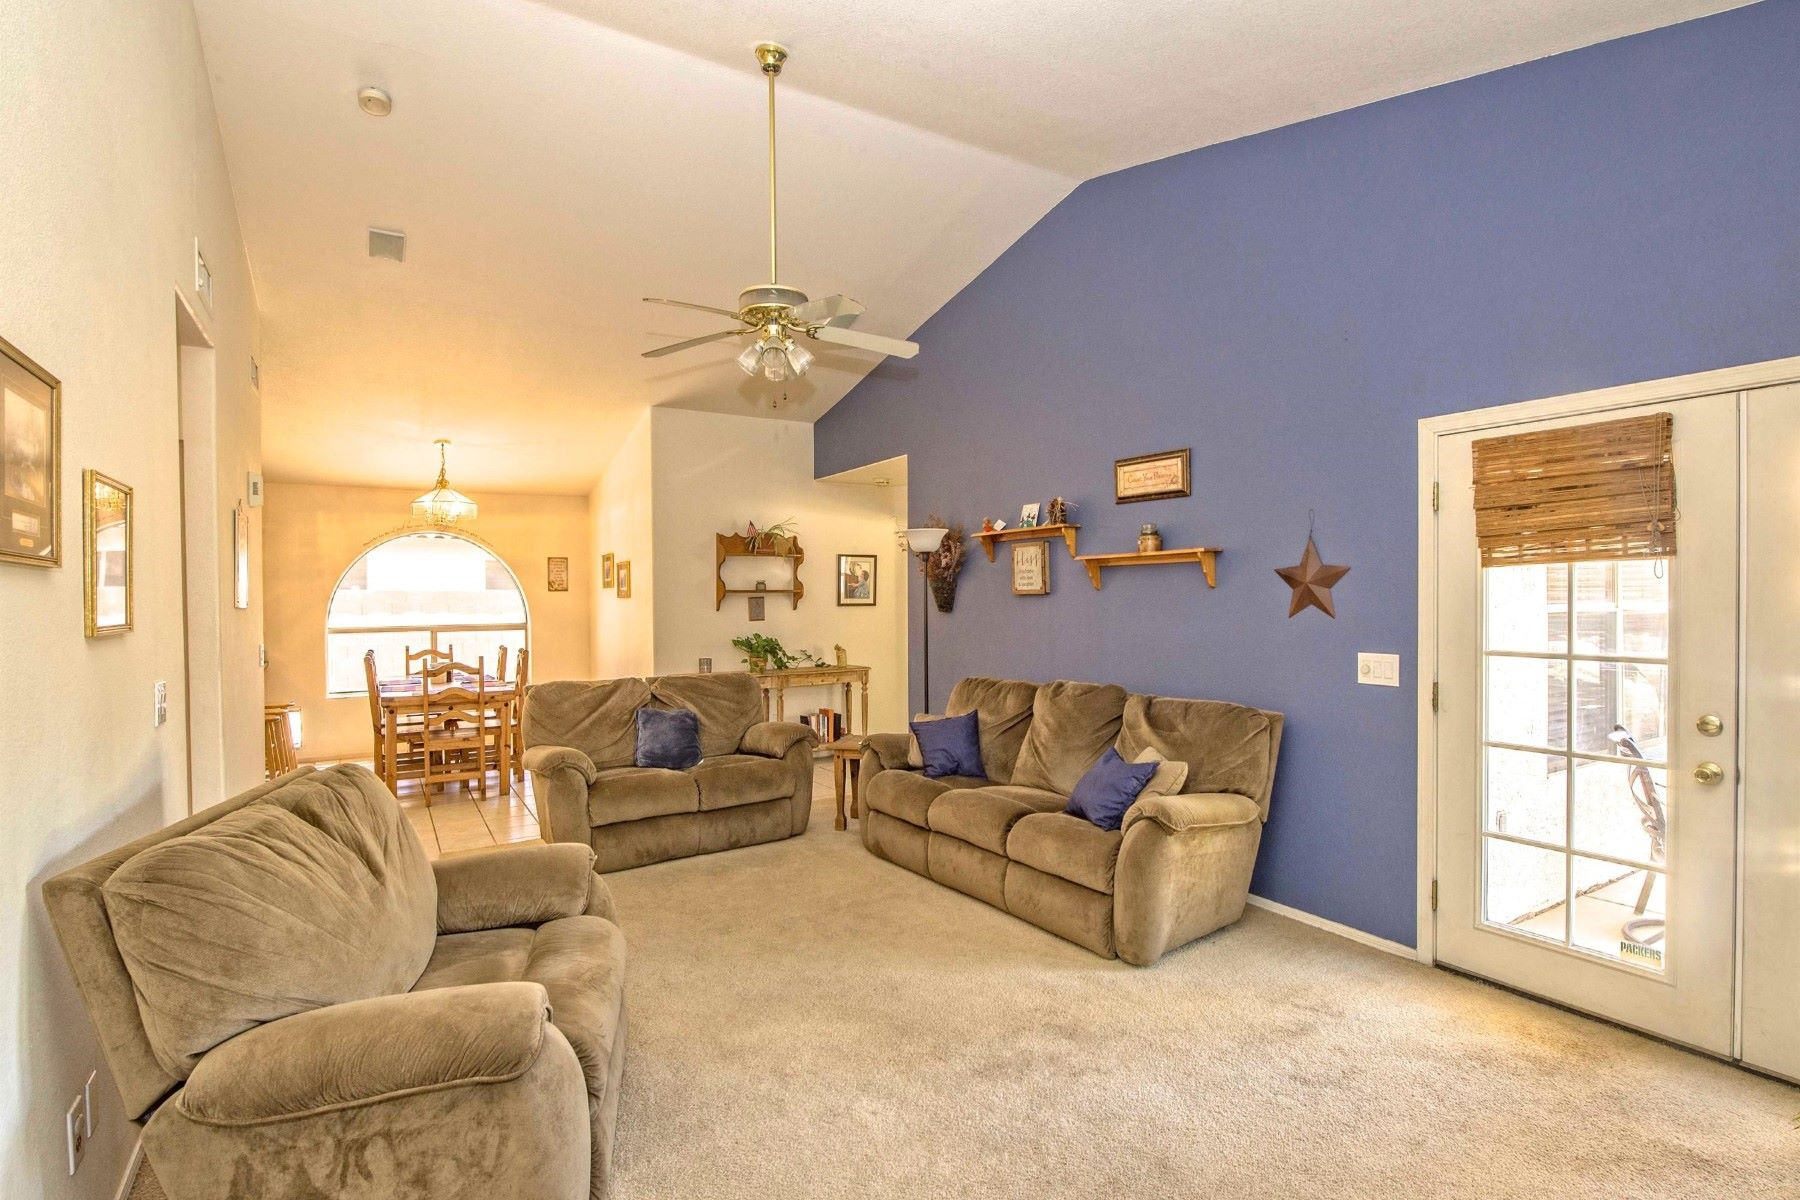 Single Family Homes for Sale at Continental At Kingswood 17140 N MELISSA LN Surprise, Arizona 85374 United States